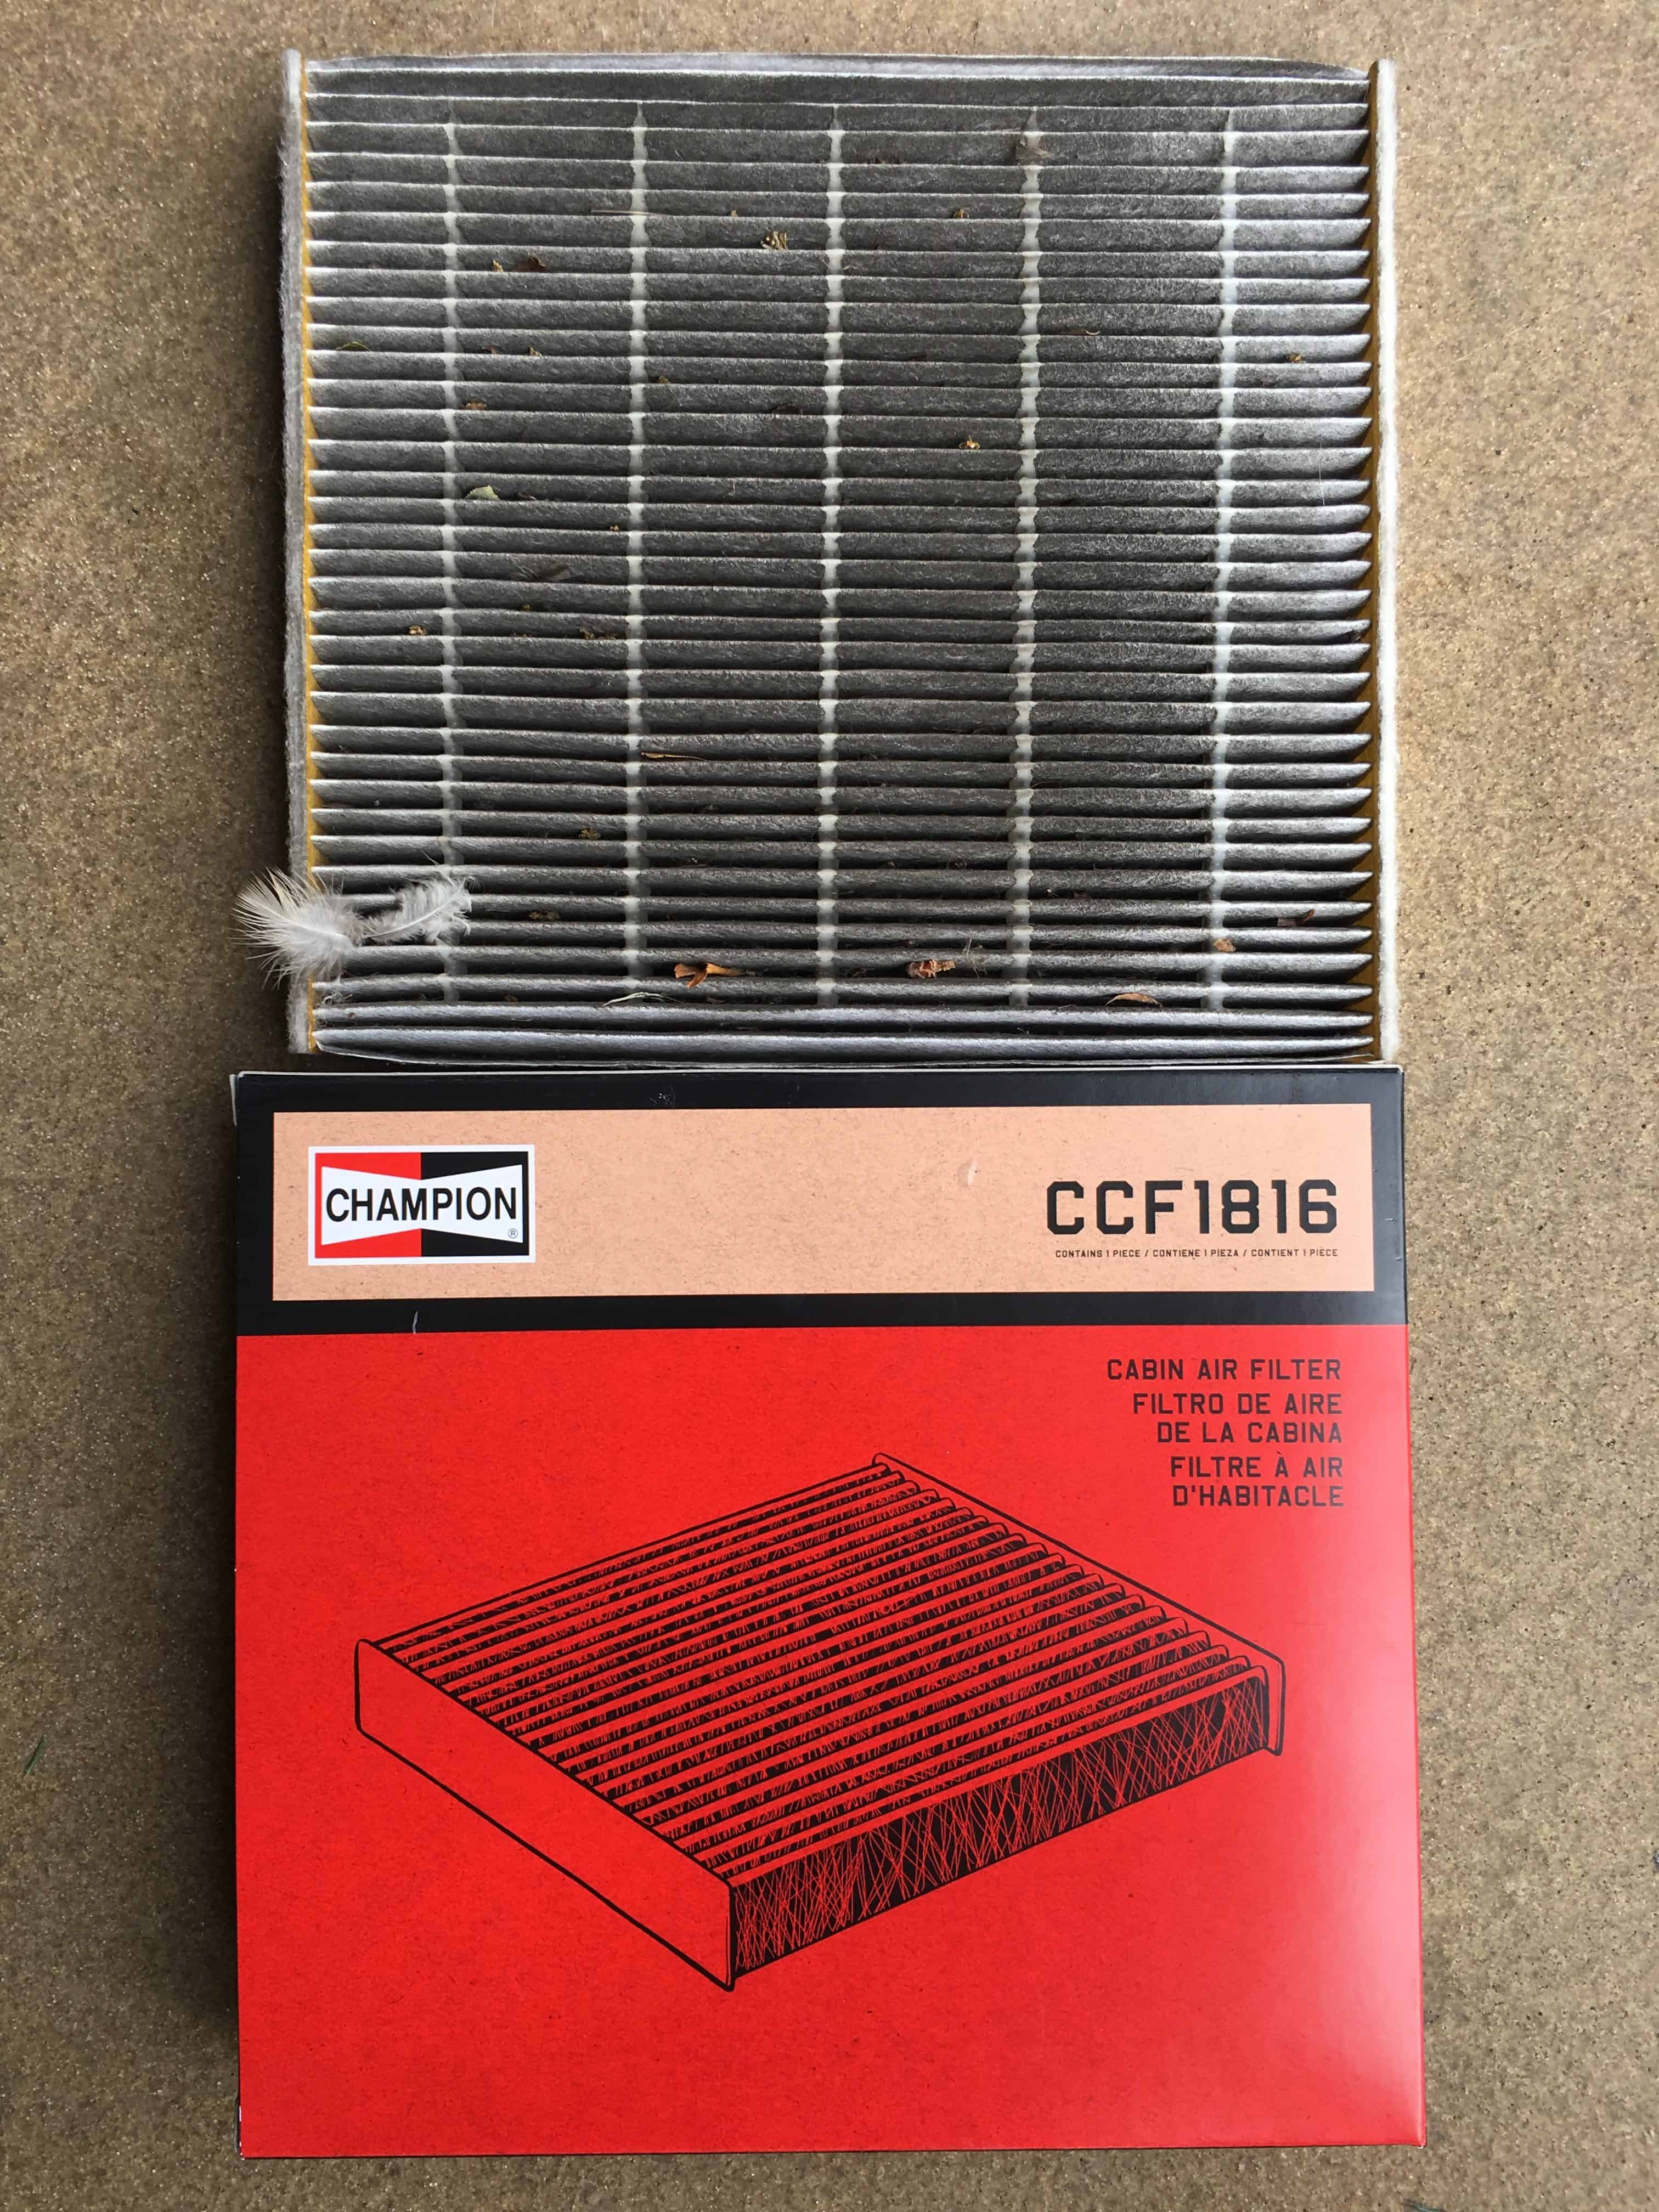 Cabin-Air-Filter-Package-FrugalReality